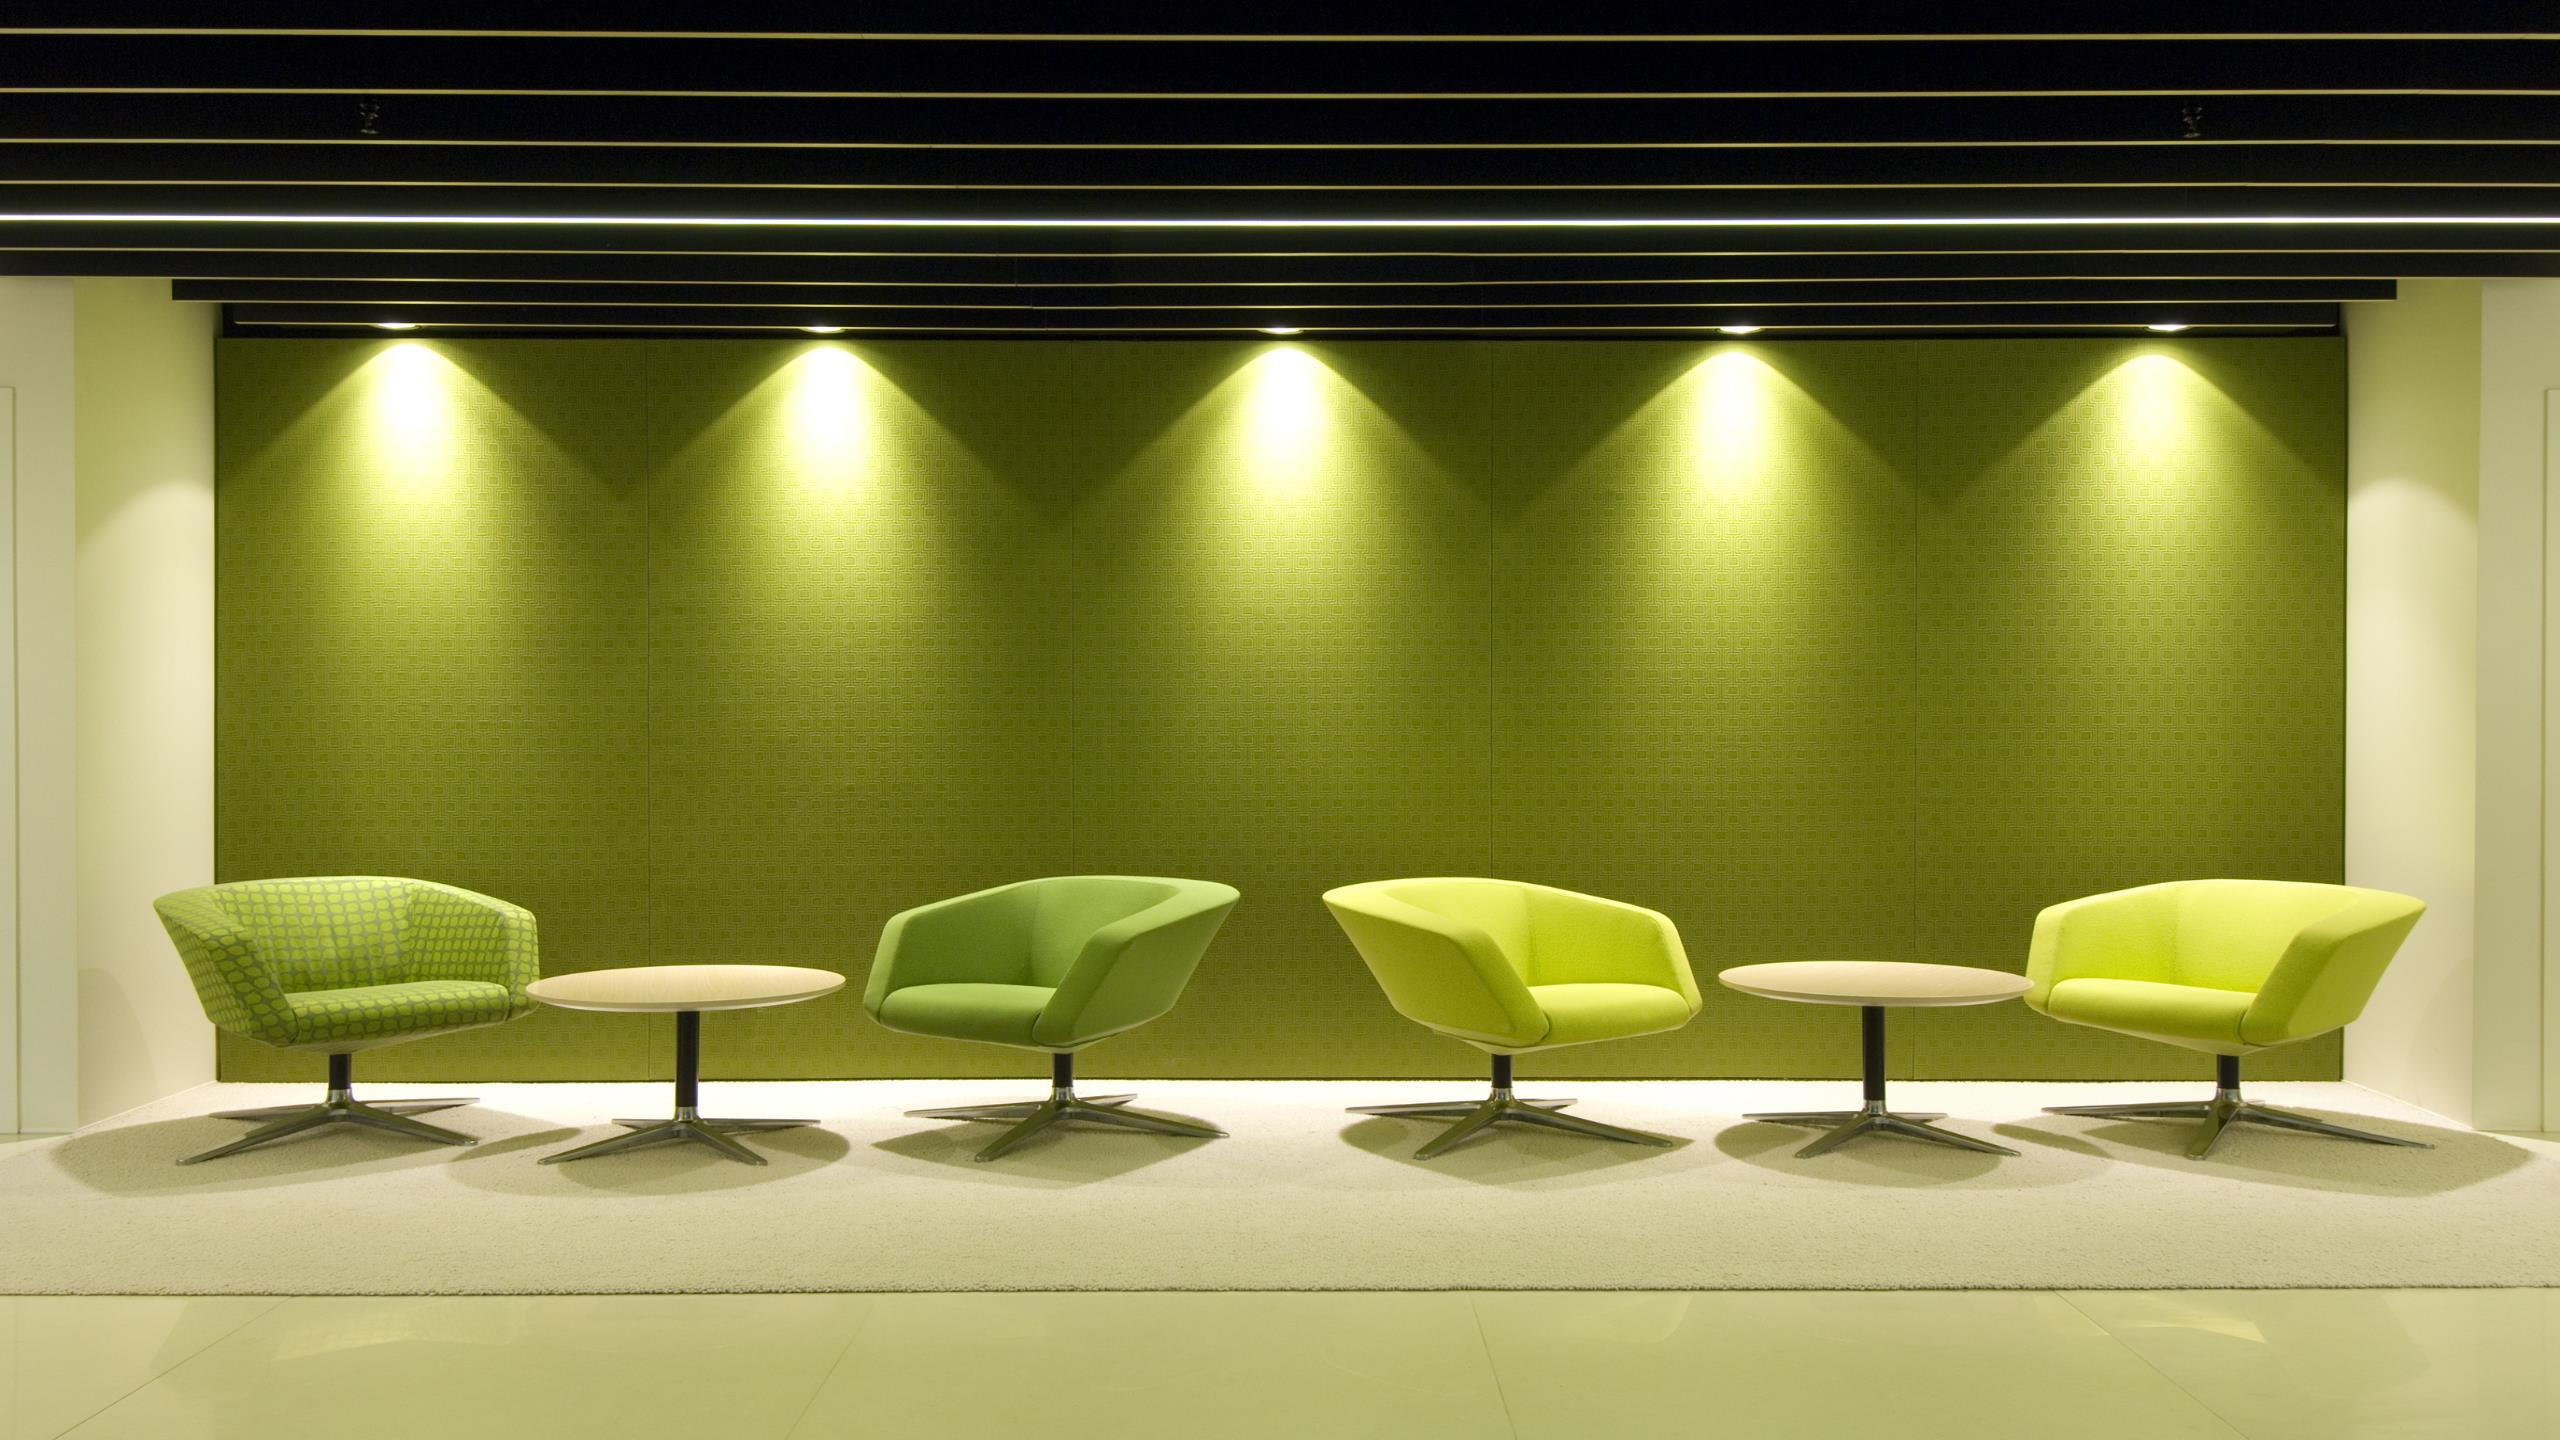 Beca AKLD reception area, showing the installed Snaptex wall in green textured fabric